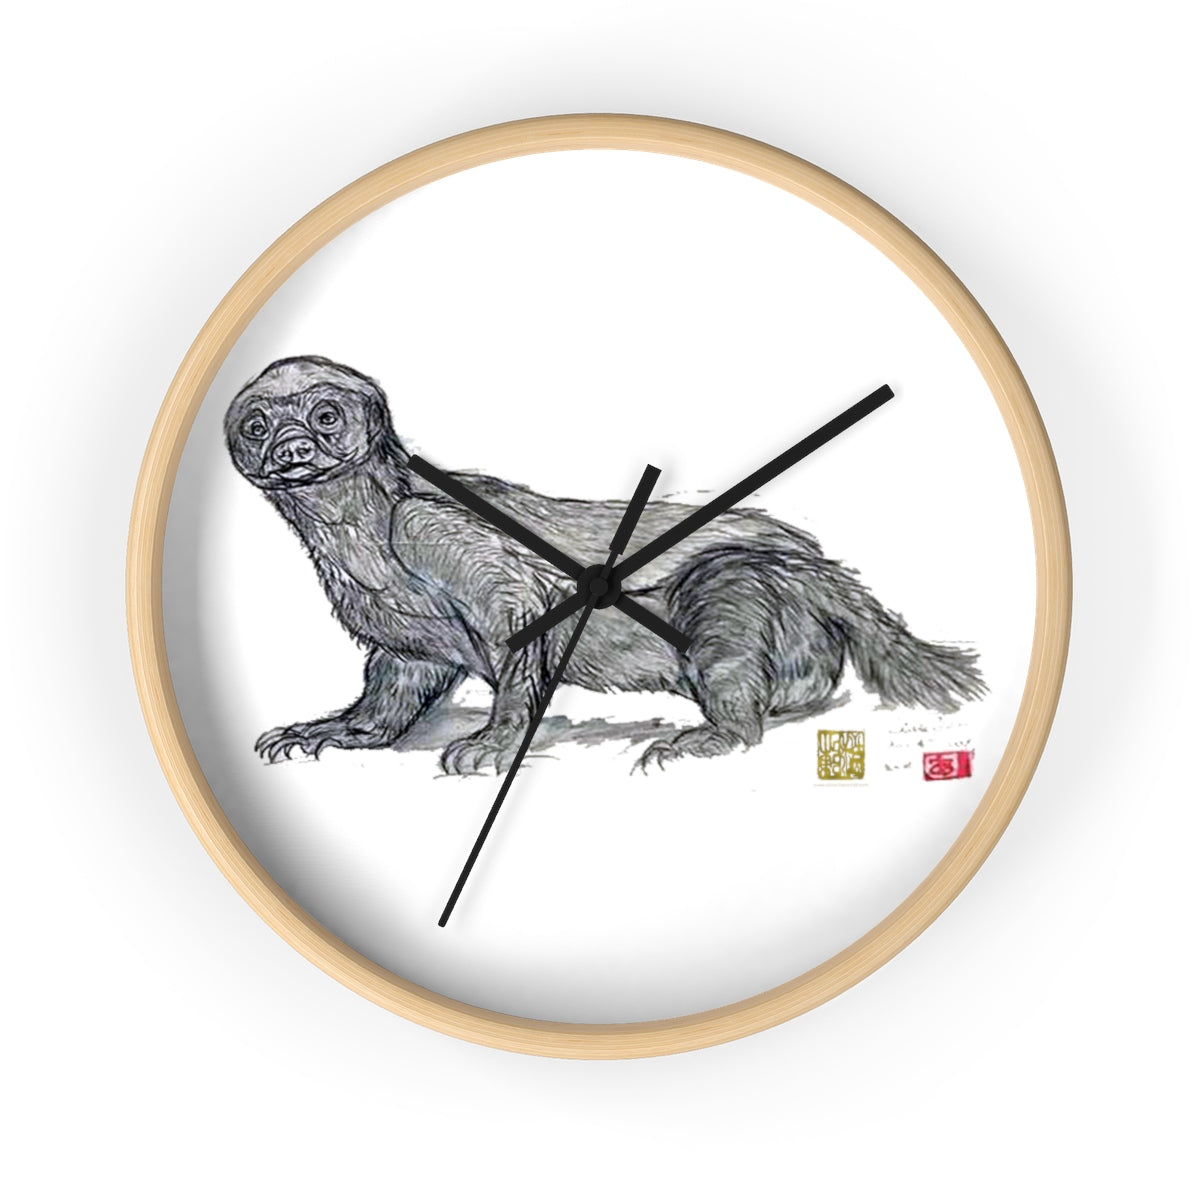 White Honey Badger Animal Artistic Fine Art Modern Unique Wall Clock- Made in USA - alicechanart